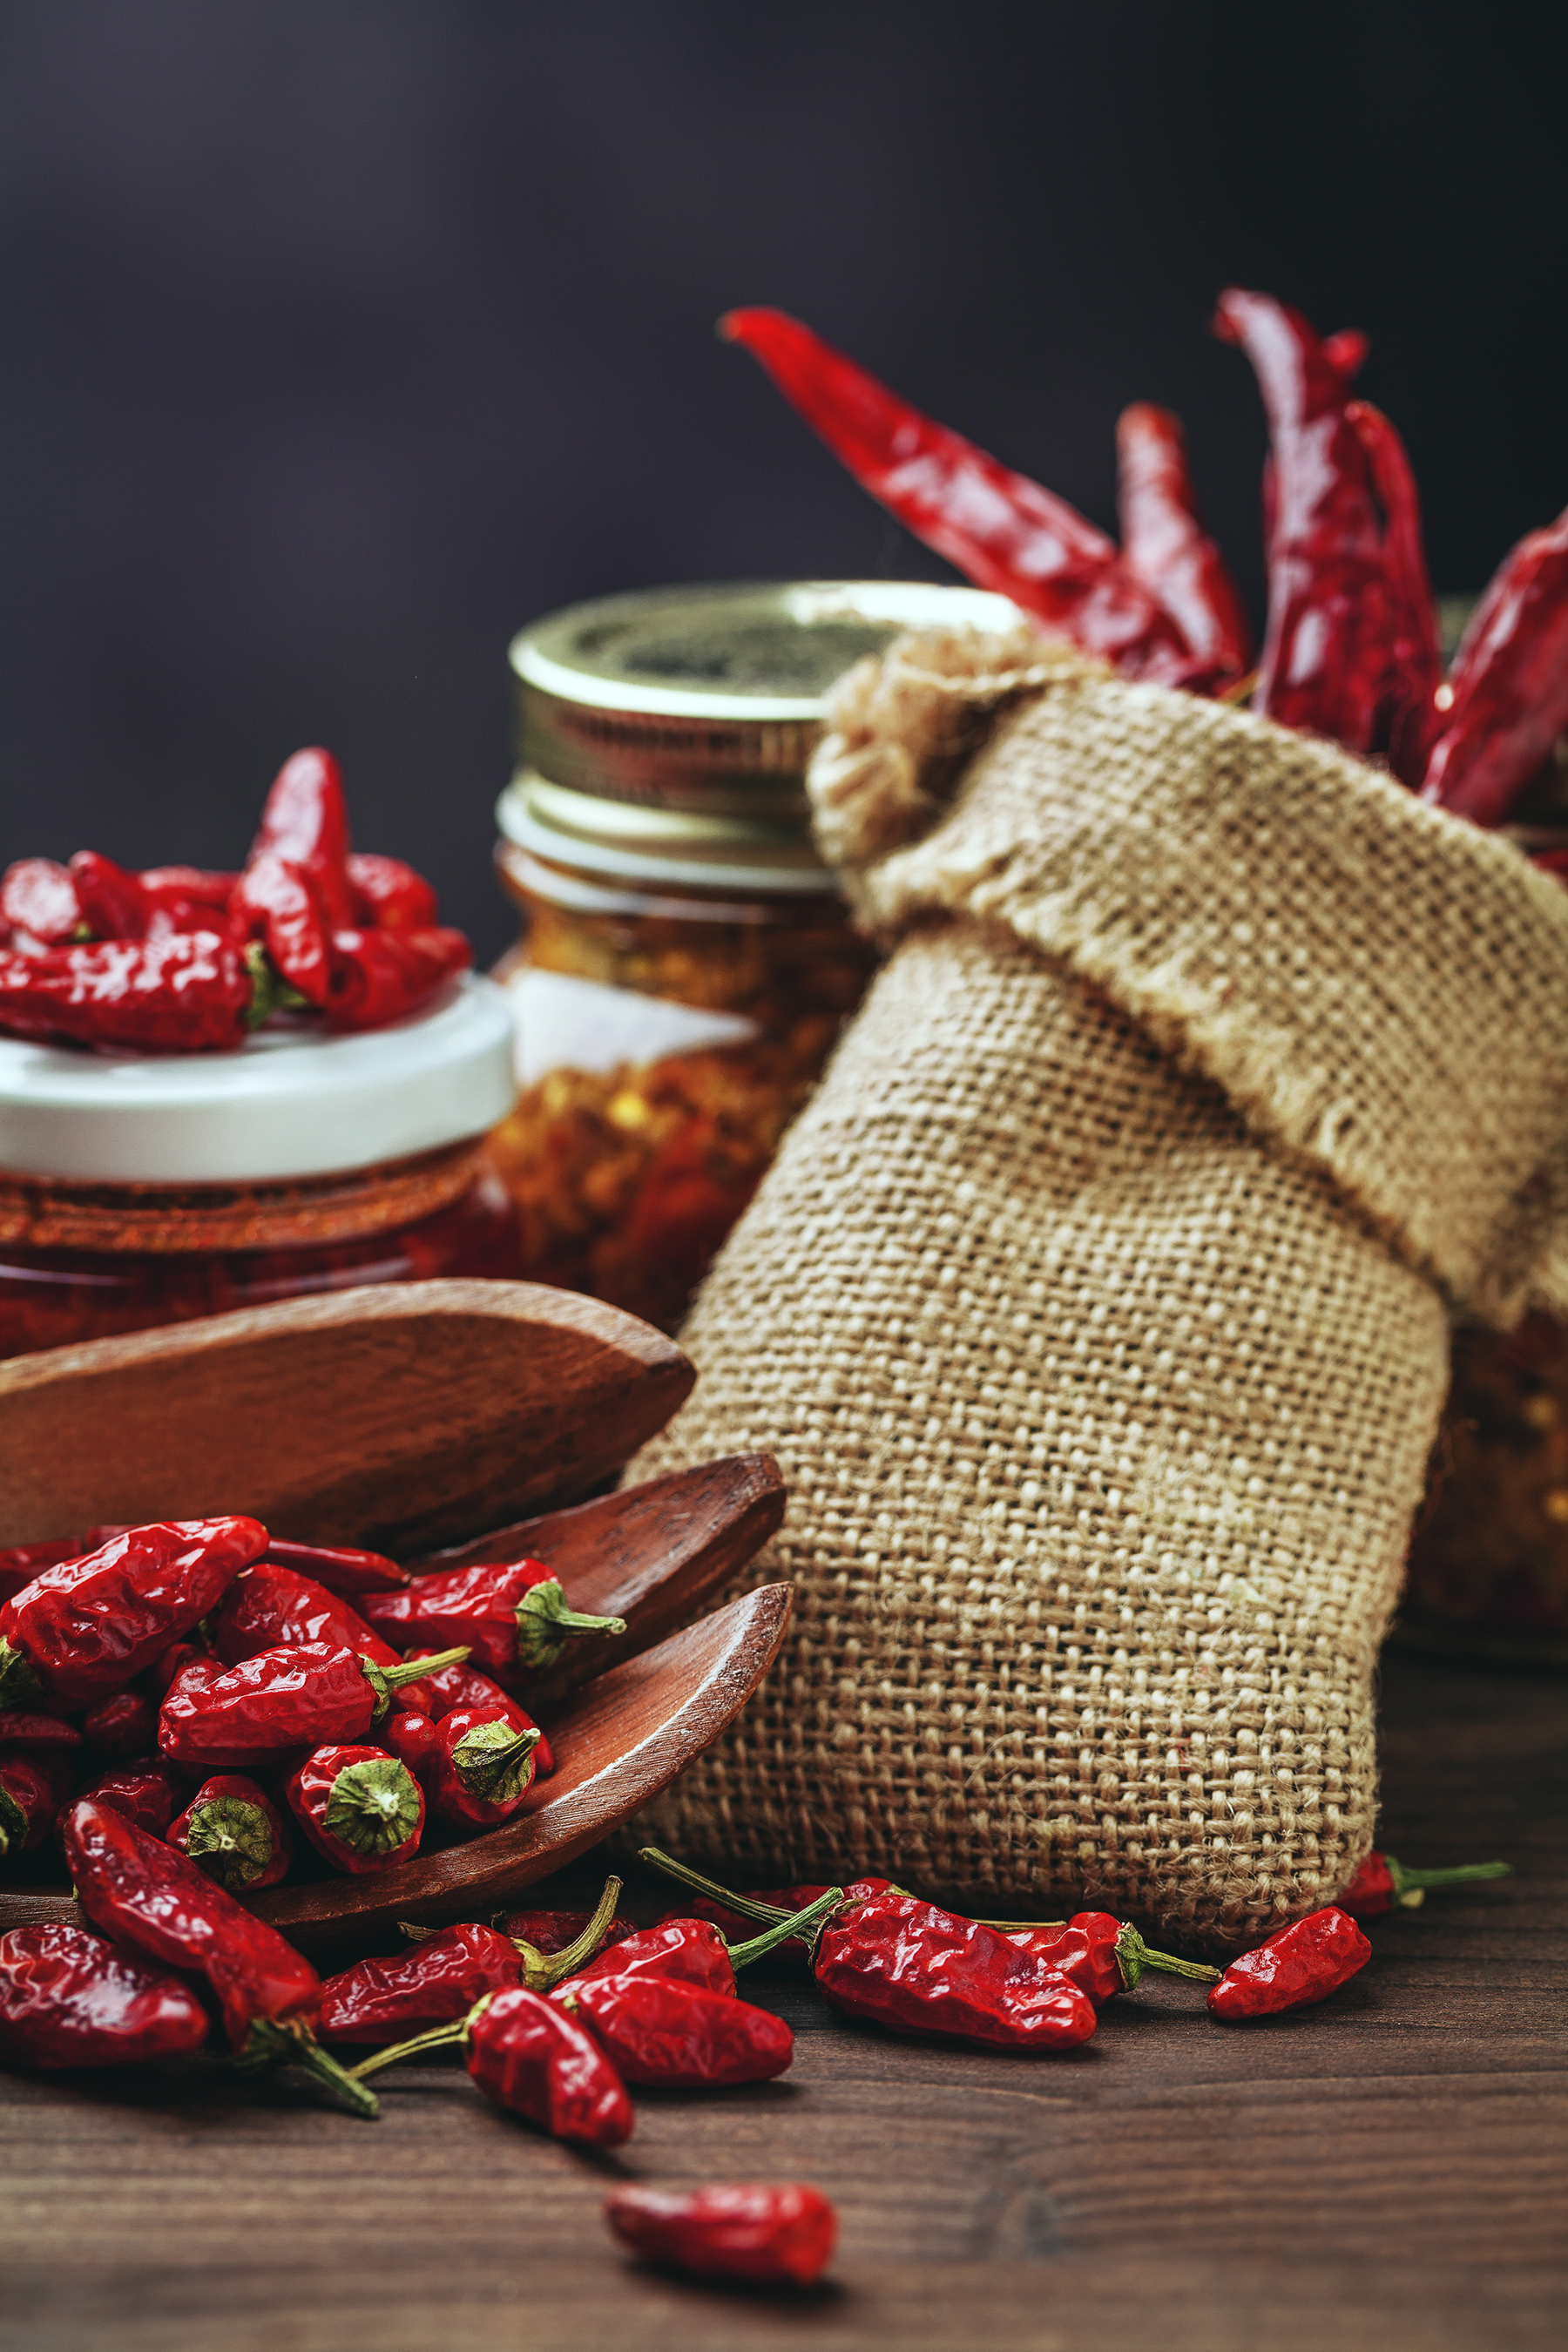 Dry pepper and a jar of red pepper 53684